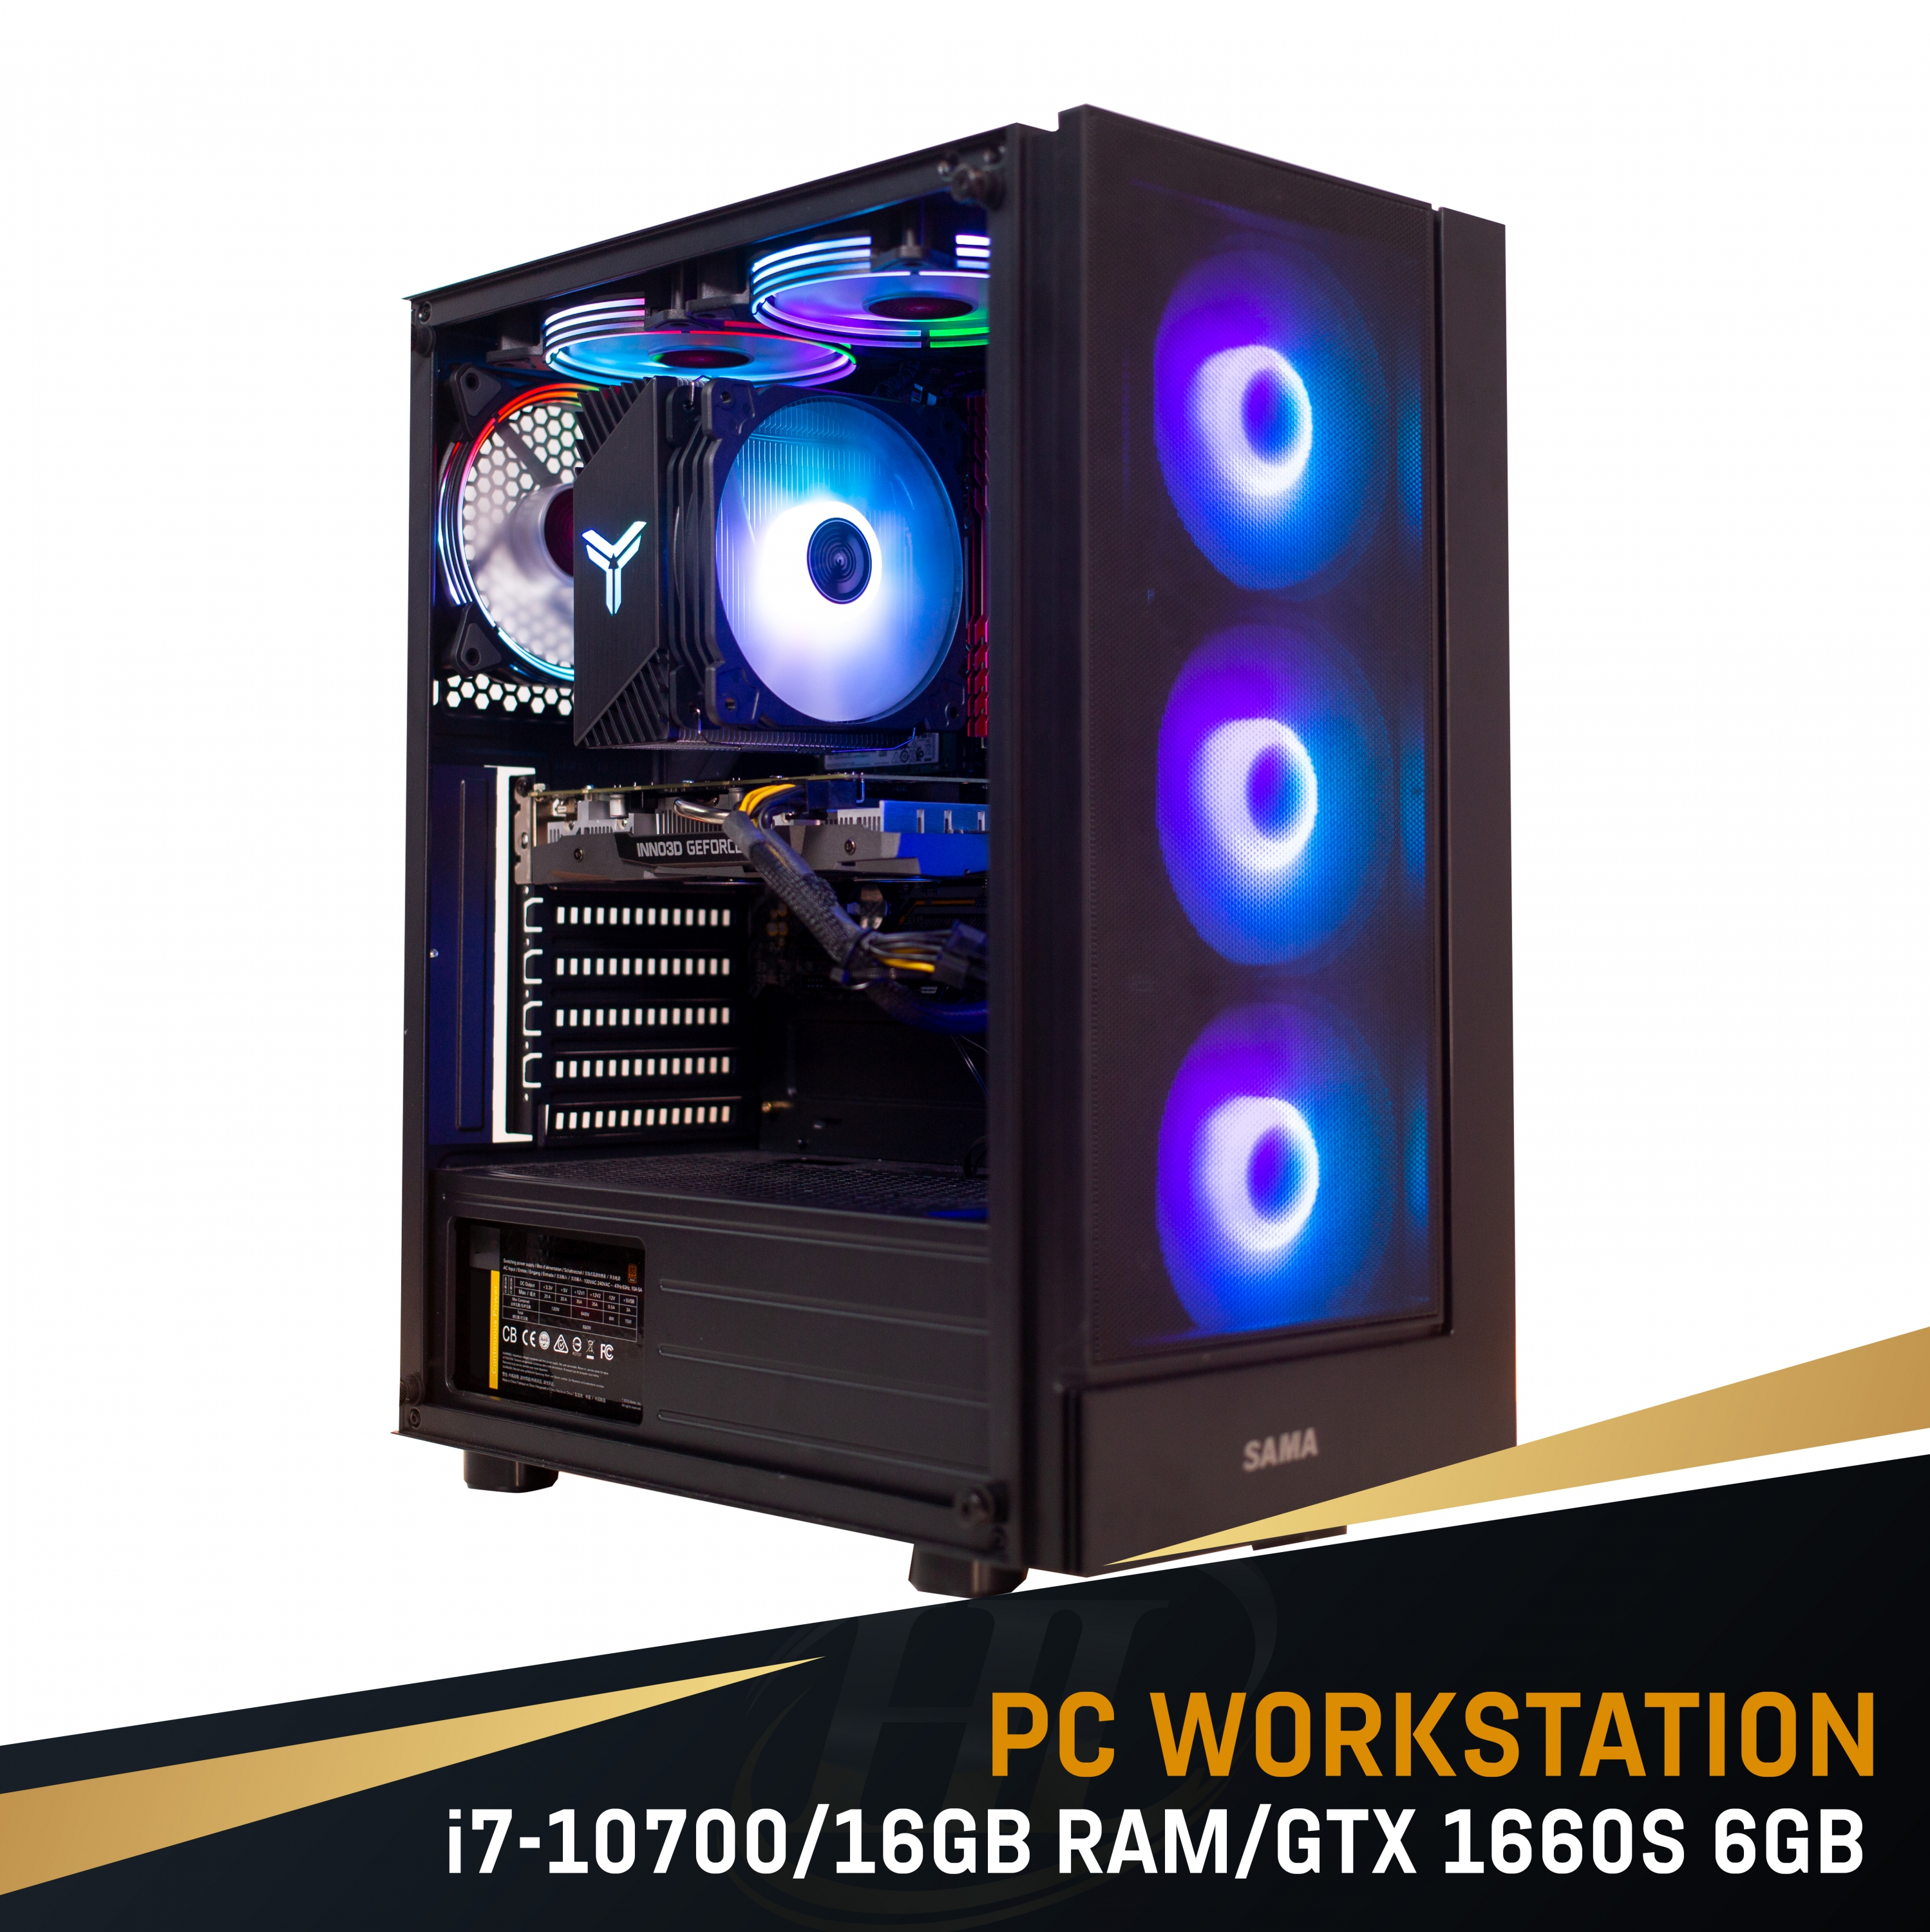 PC Intel i7 10700/ 16GB Ram/ GTX 1660 Super 6GB